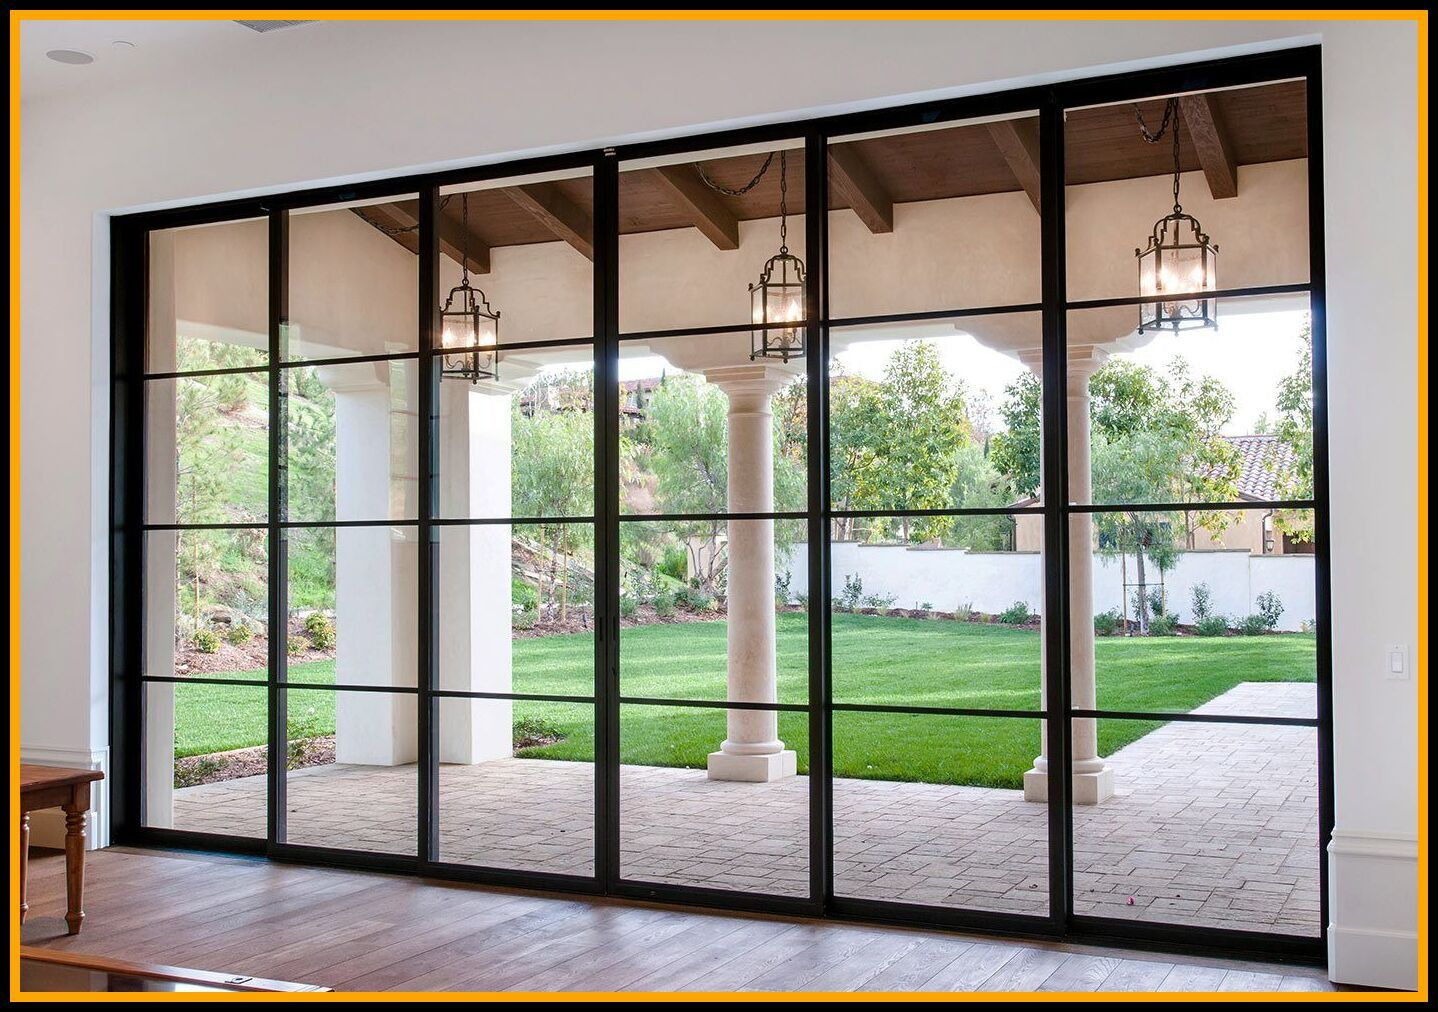 79 Reference Of French Door Decor Sliding Patio In 2020 Modern Sliding Glass Doors Sliding Glass Doors Patio Double Sliding Glass Doors